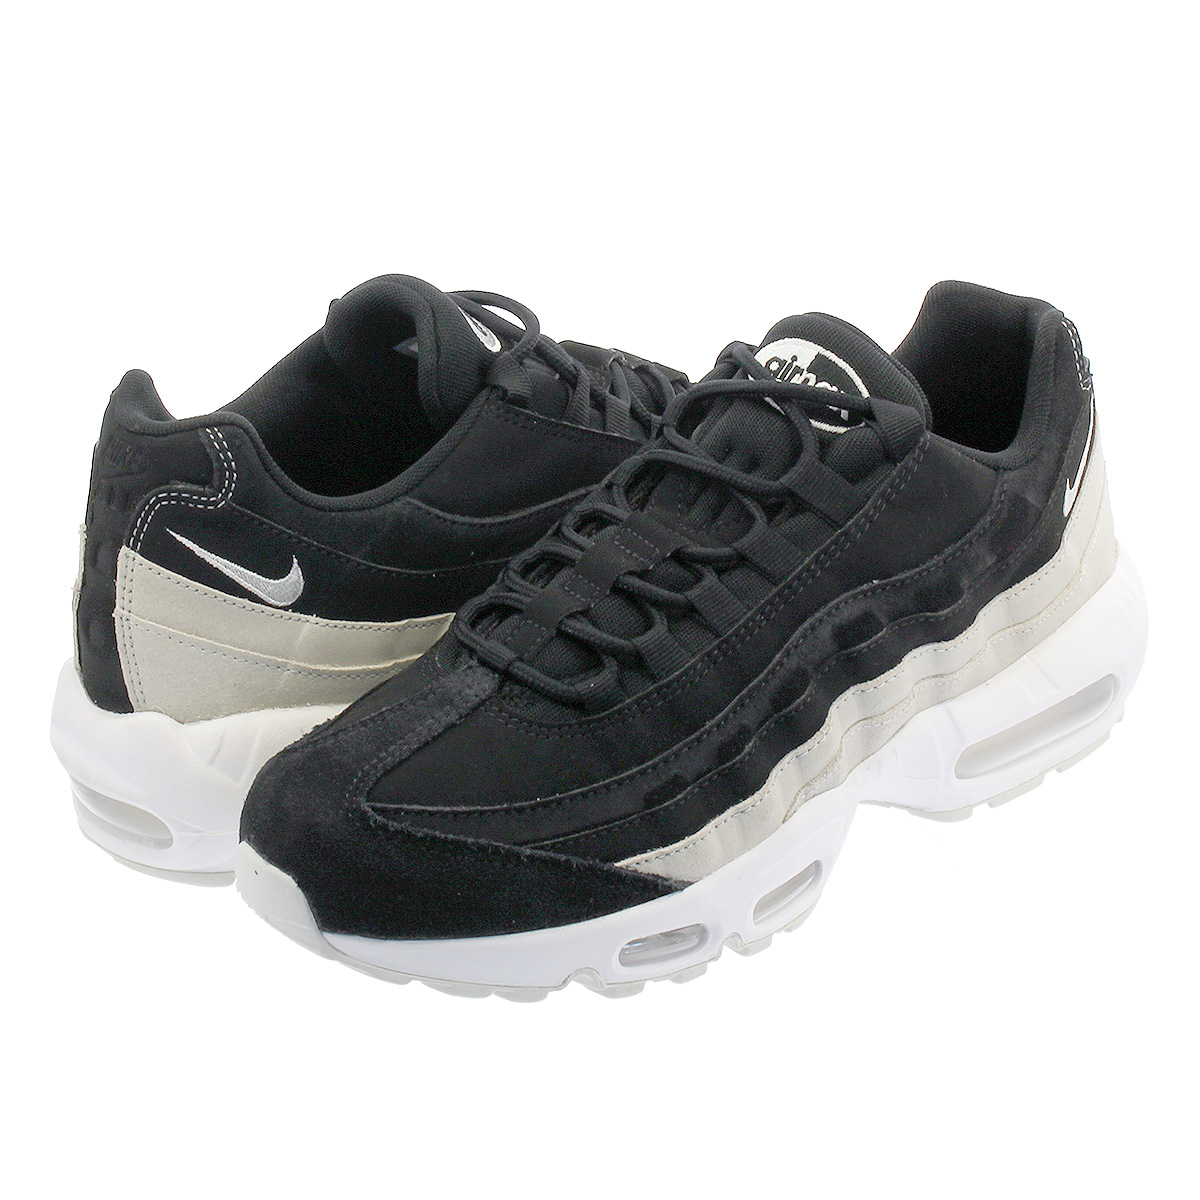 best service 2094d 05043 NIKE WMNS AIR MAX 95 PRM Nike women Air Max 95 premium BLACK/SPRUCE  AURA/SUMMIT WHITE 807,443-017